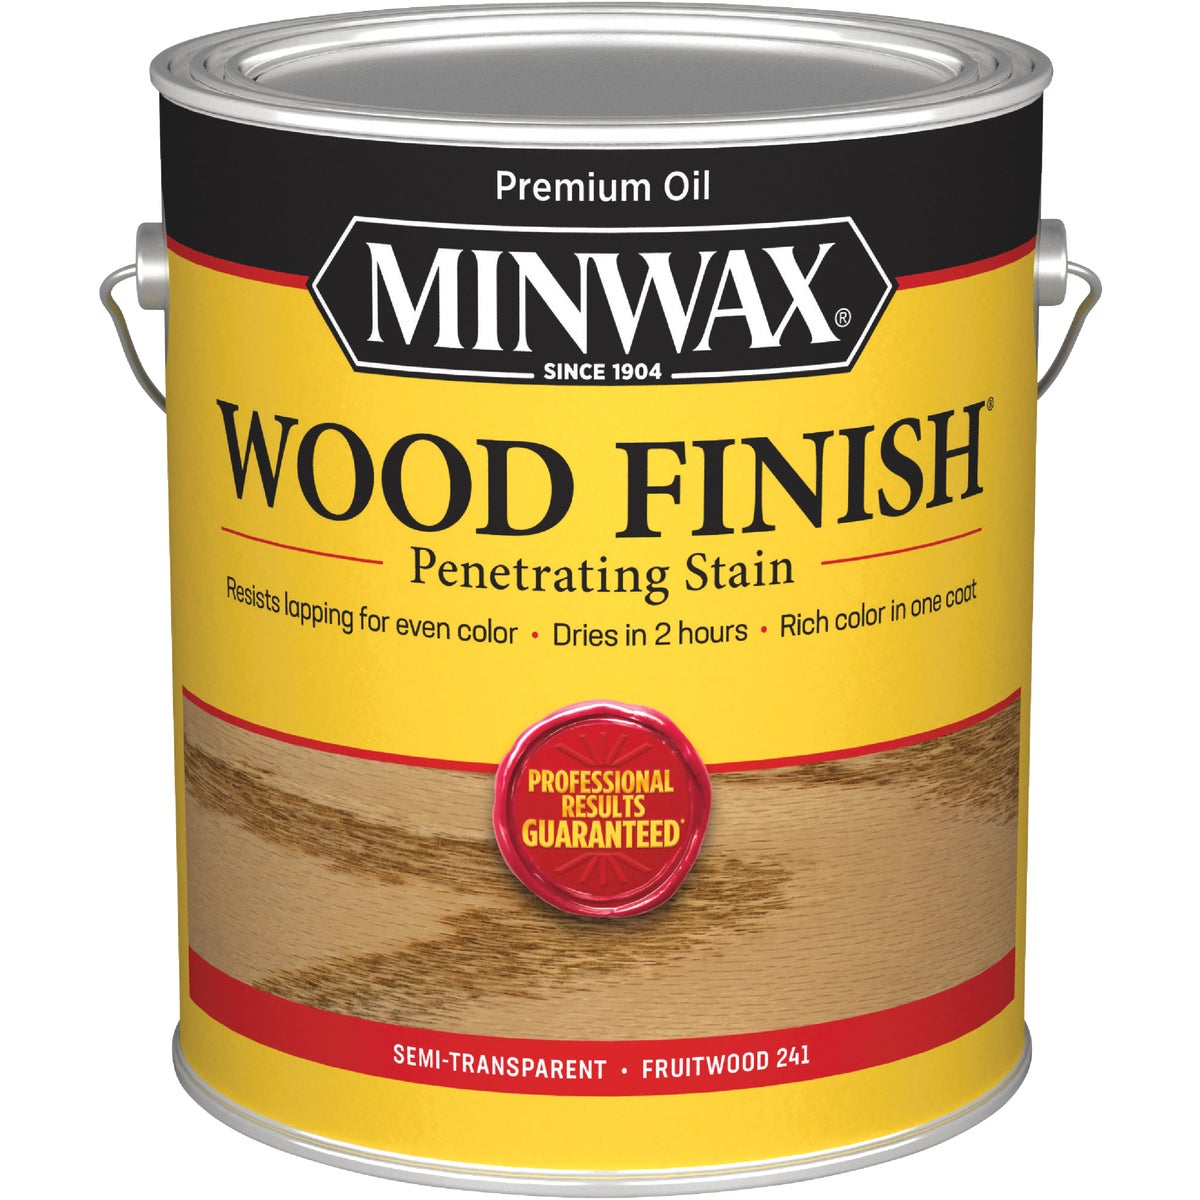 FRUITWOOD WOOD STAIN - 71010 by Minwax Company